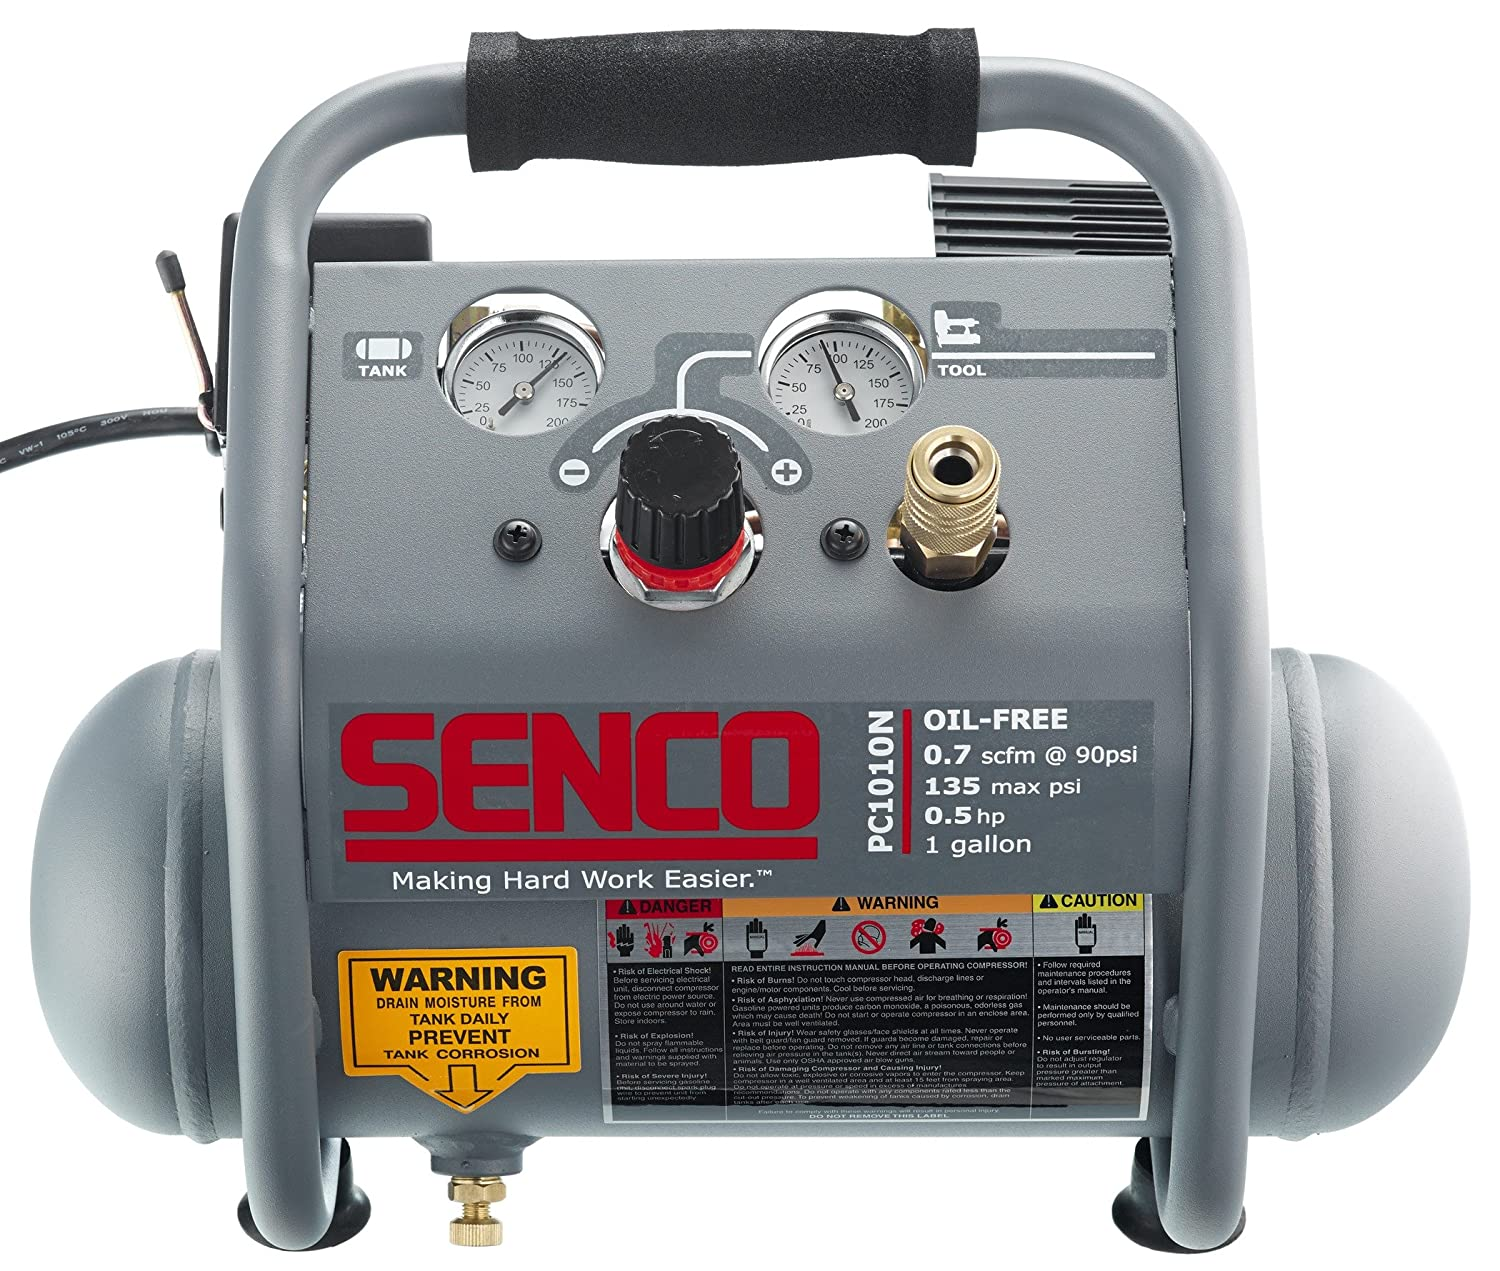 Senco PC1010N 1/2 hp Finish